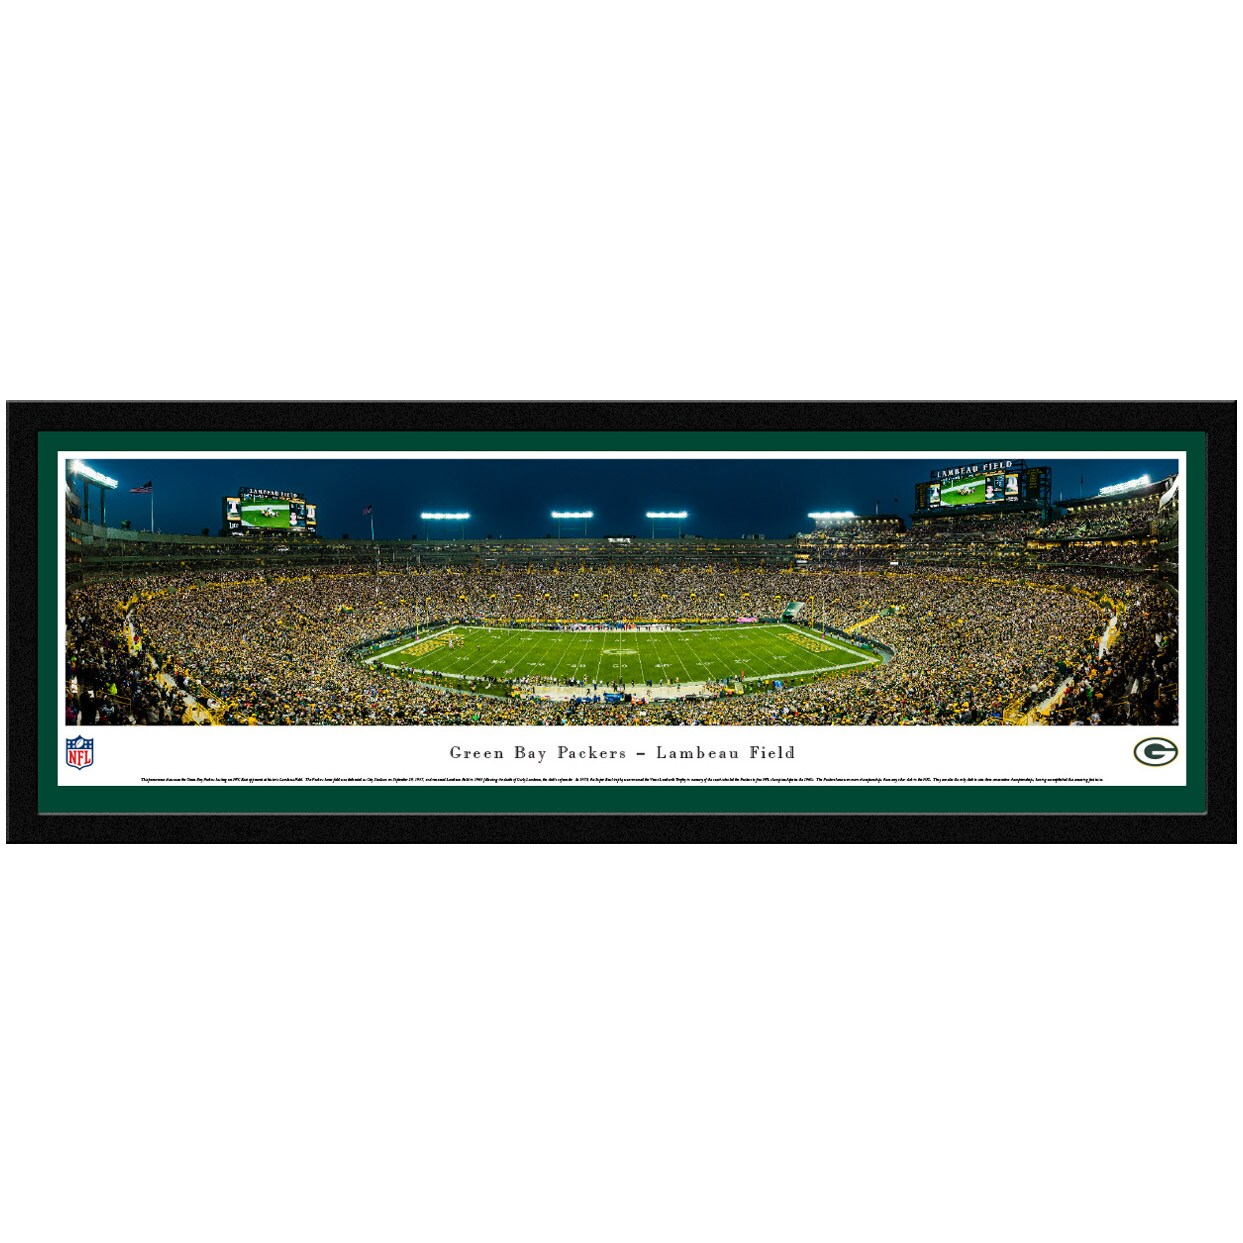 "Green Bay Packers 42"" x 15.5"" Select Frame Panoramic Photo"